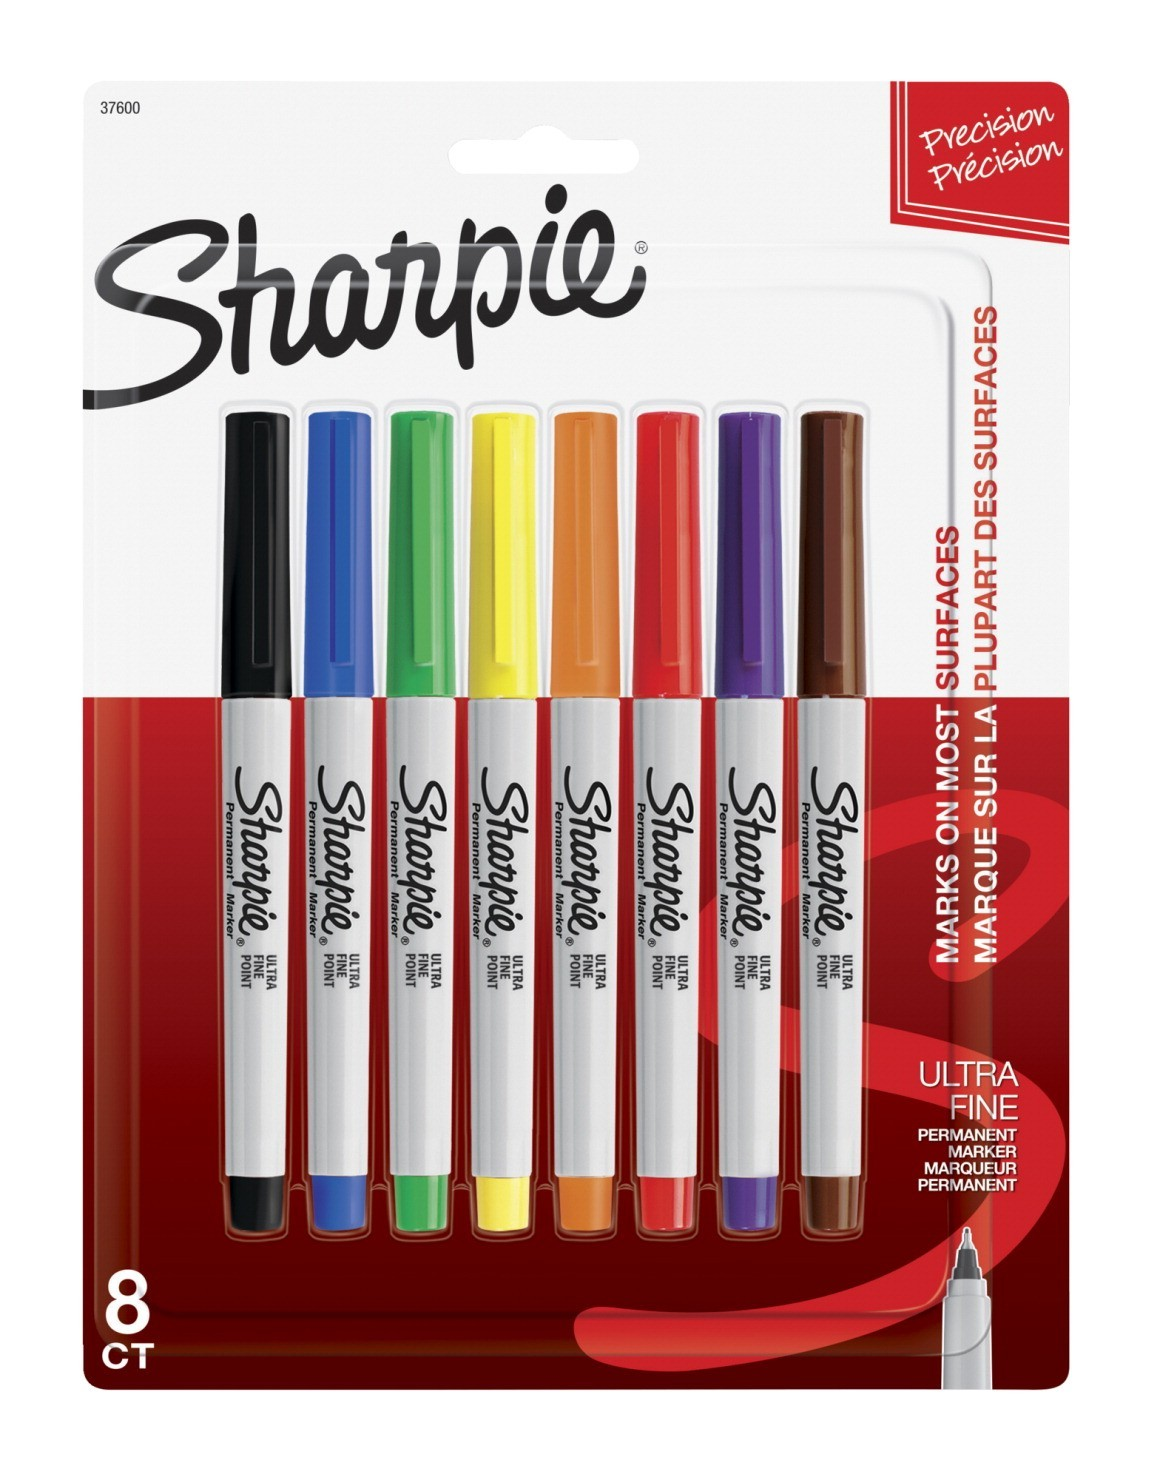 Sharpie Non-Toxic Waterproof Permanent Marker, Ultra Fine Tip, Assorted Color, Pack of 8